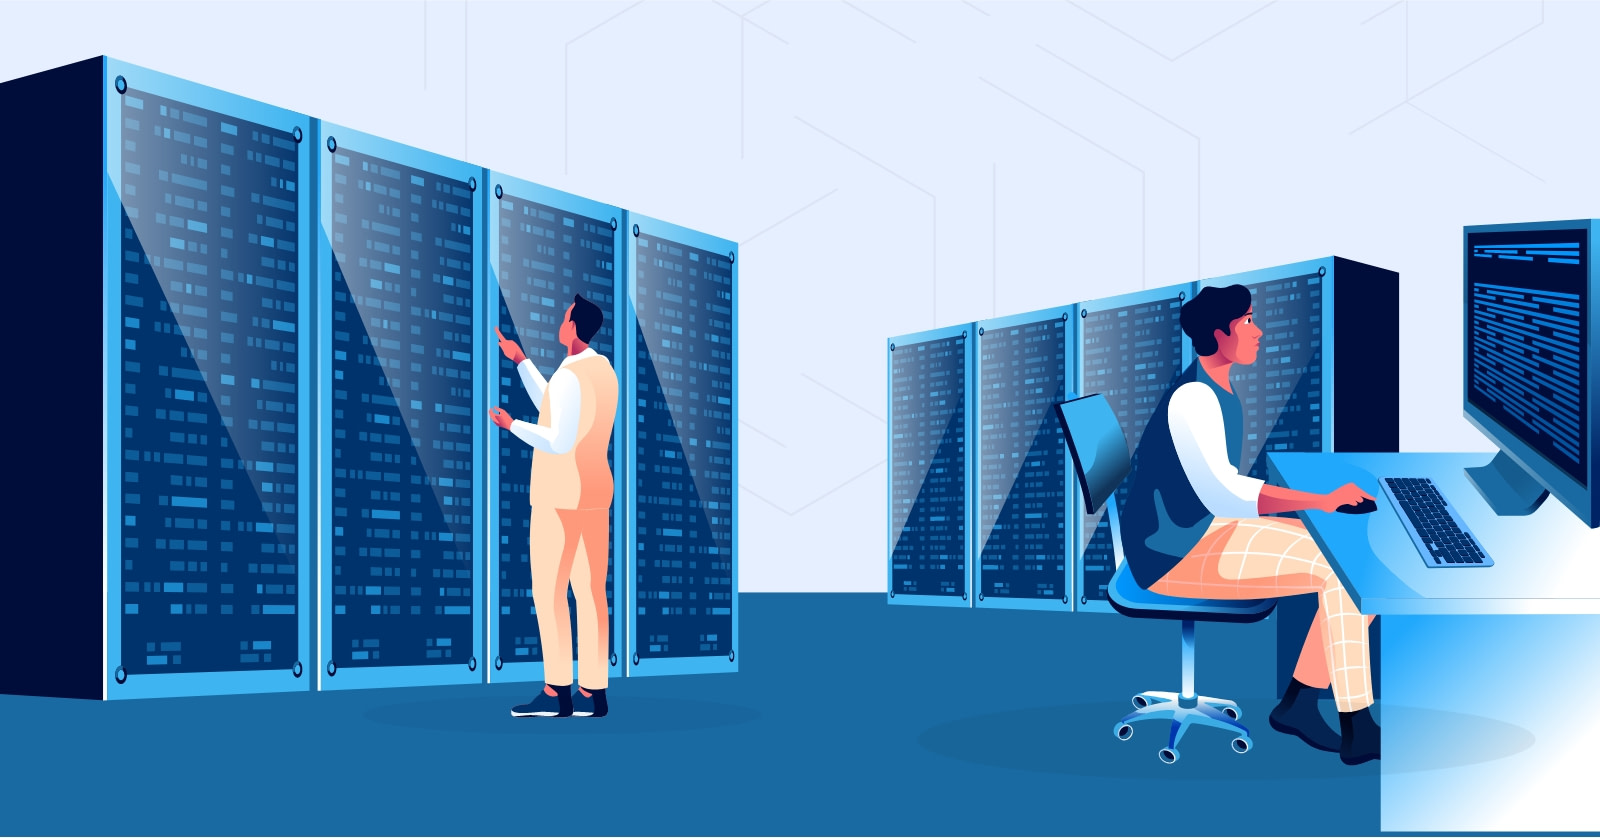 How ITAD can help with Data Center challenges